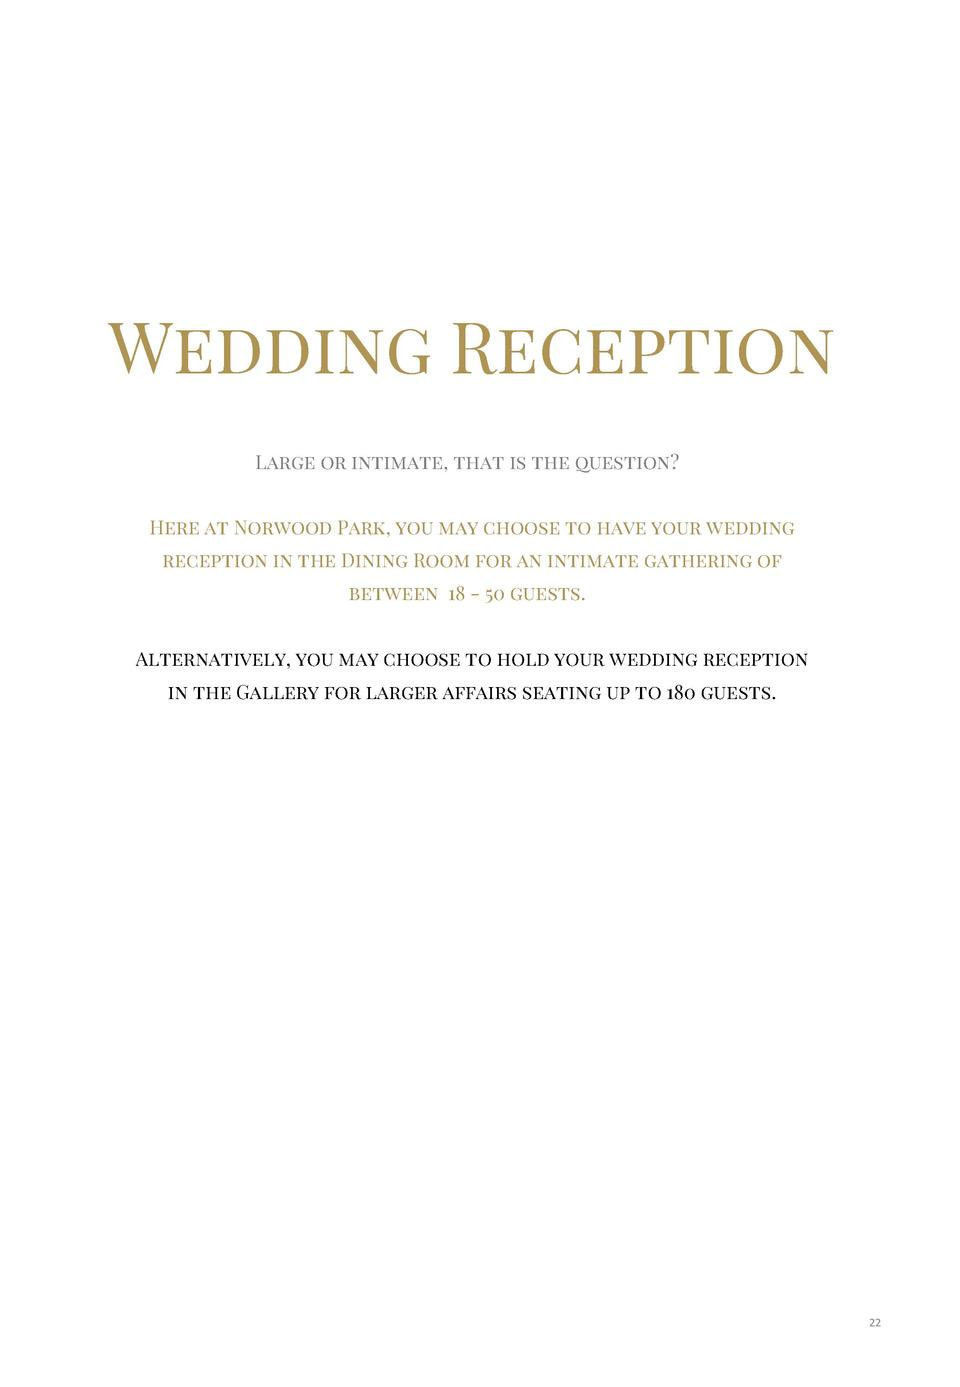 Wedding Reception Large or intimate, that is the question  Here at Norwood Park, you may choose to have your wedding recep...